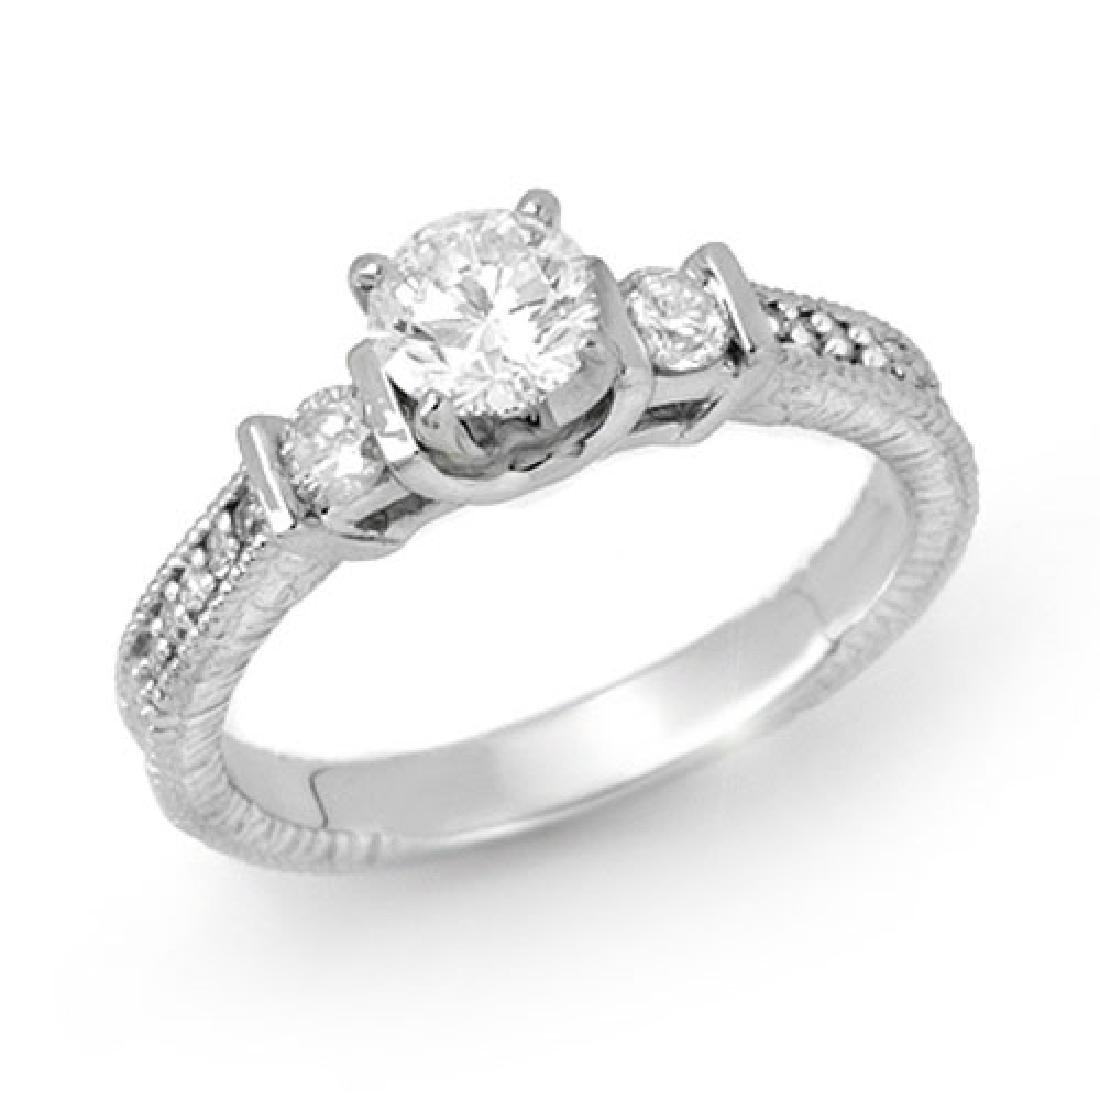 0.90 CTW Certified VS/SI Diamond Solitaire Ring 14K